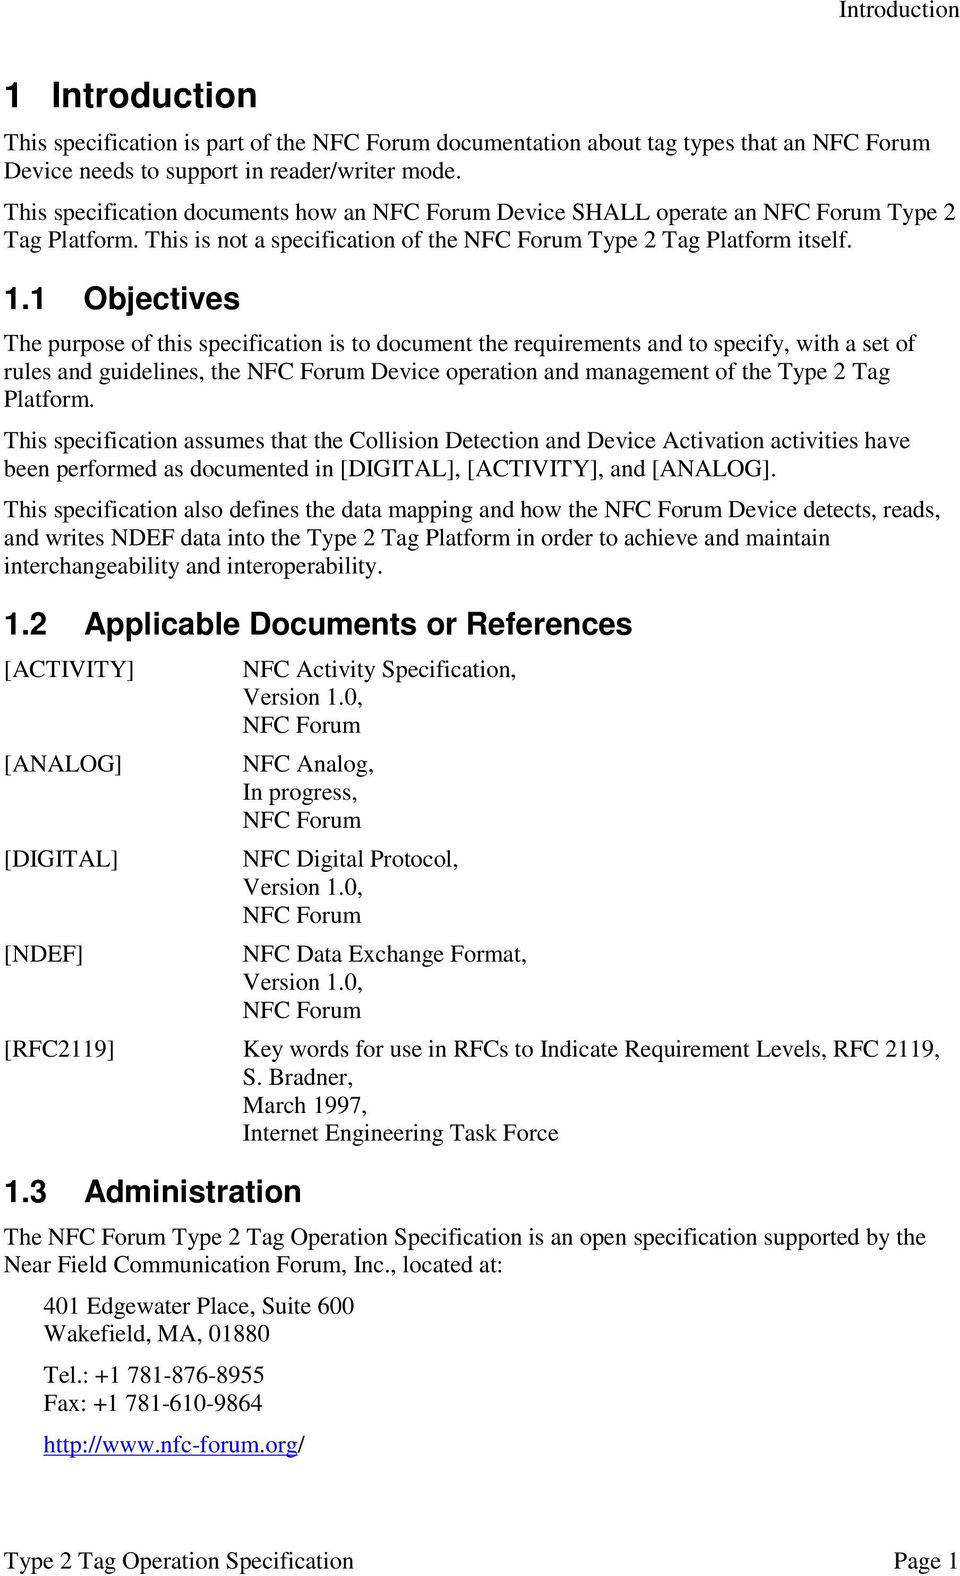 1 Objectives The purpose of this specification is to document the requirements and to specify, with a set of rules and guidelines, the NFC Forum Device operation and management of the Type 2 Tag